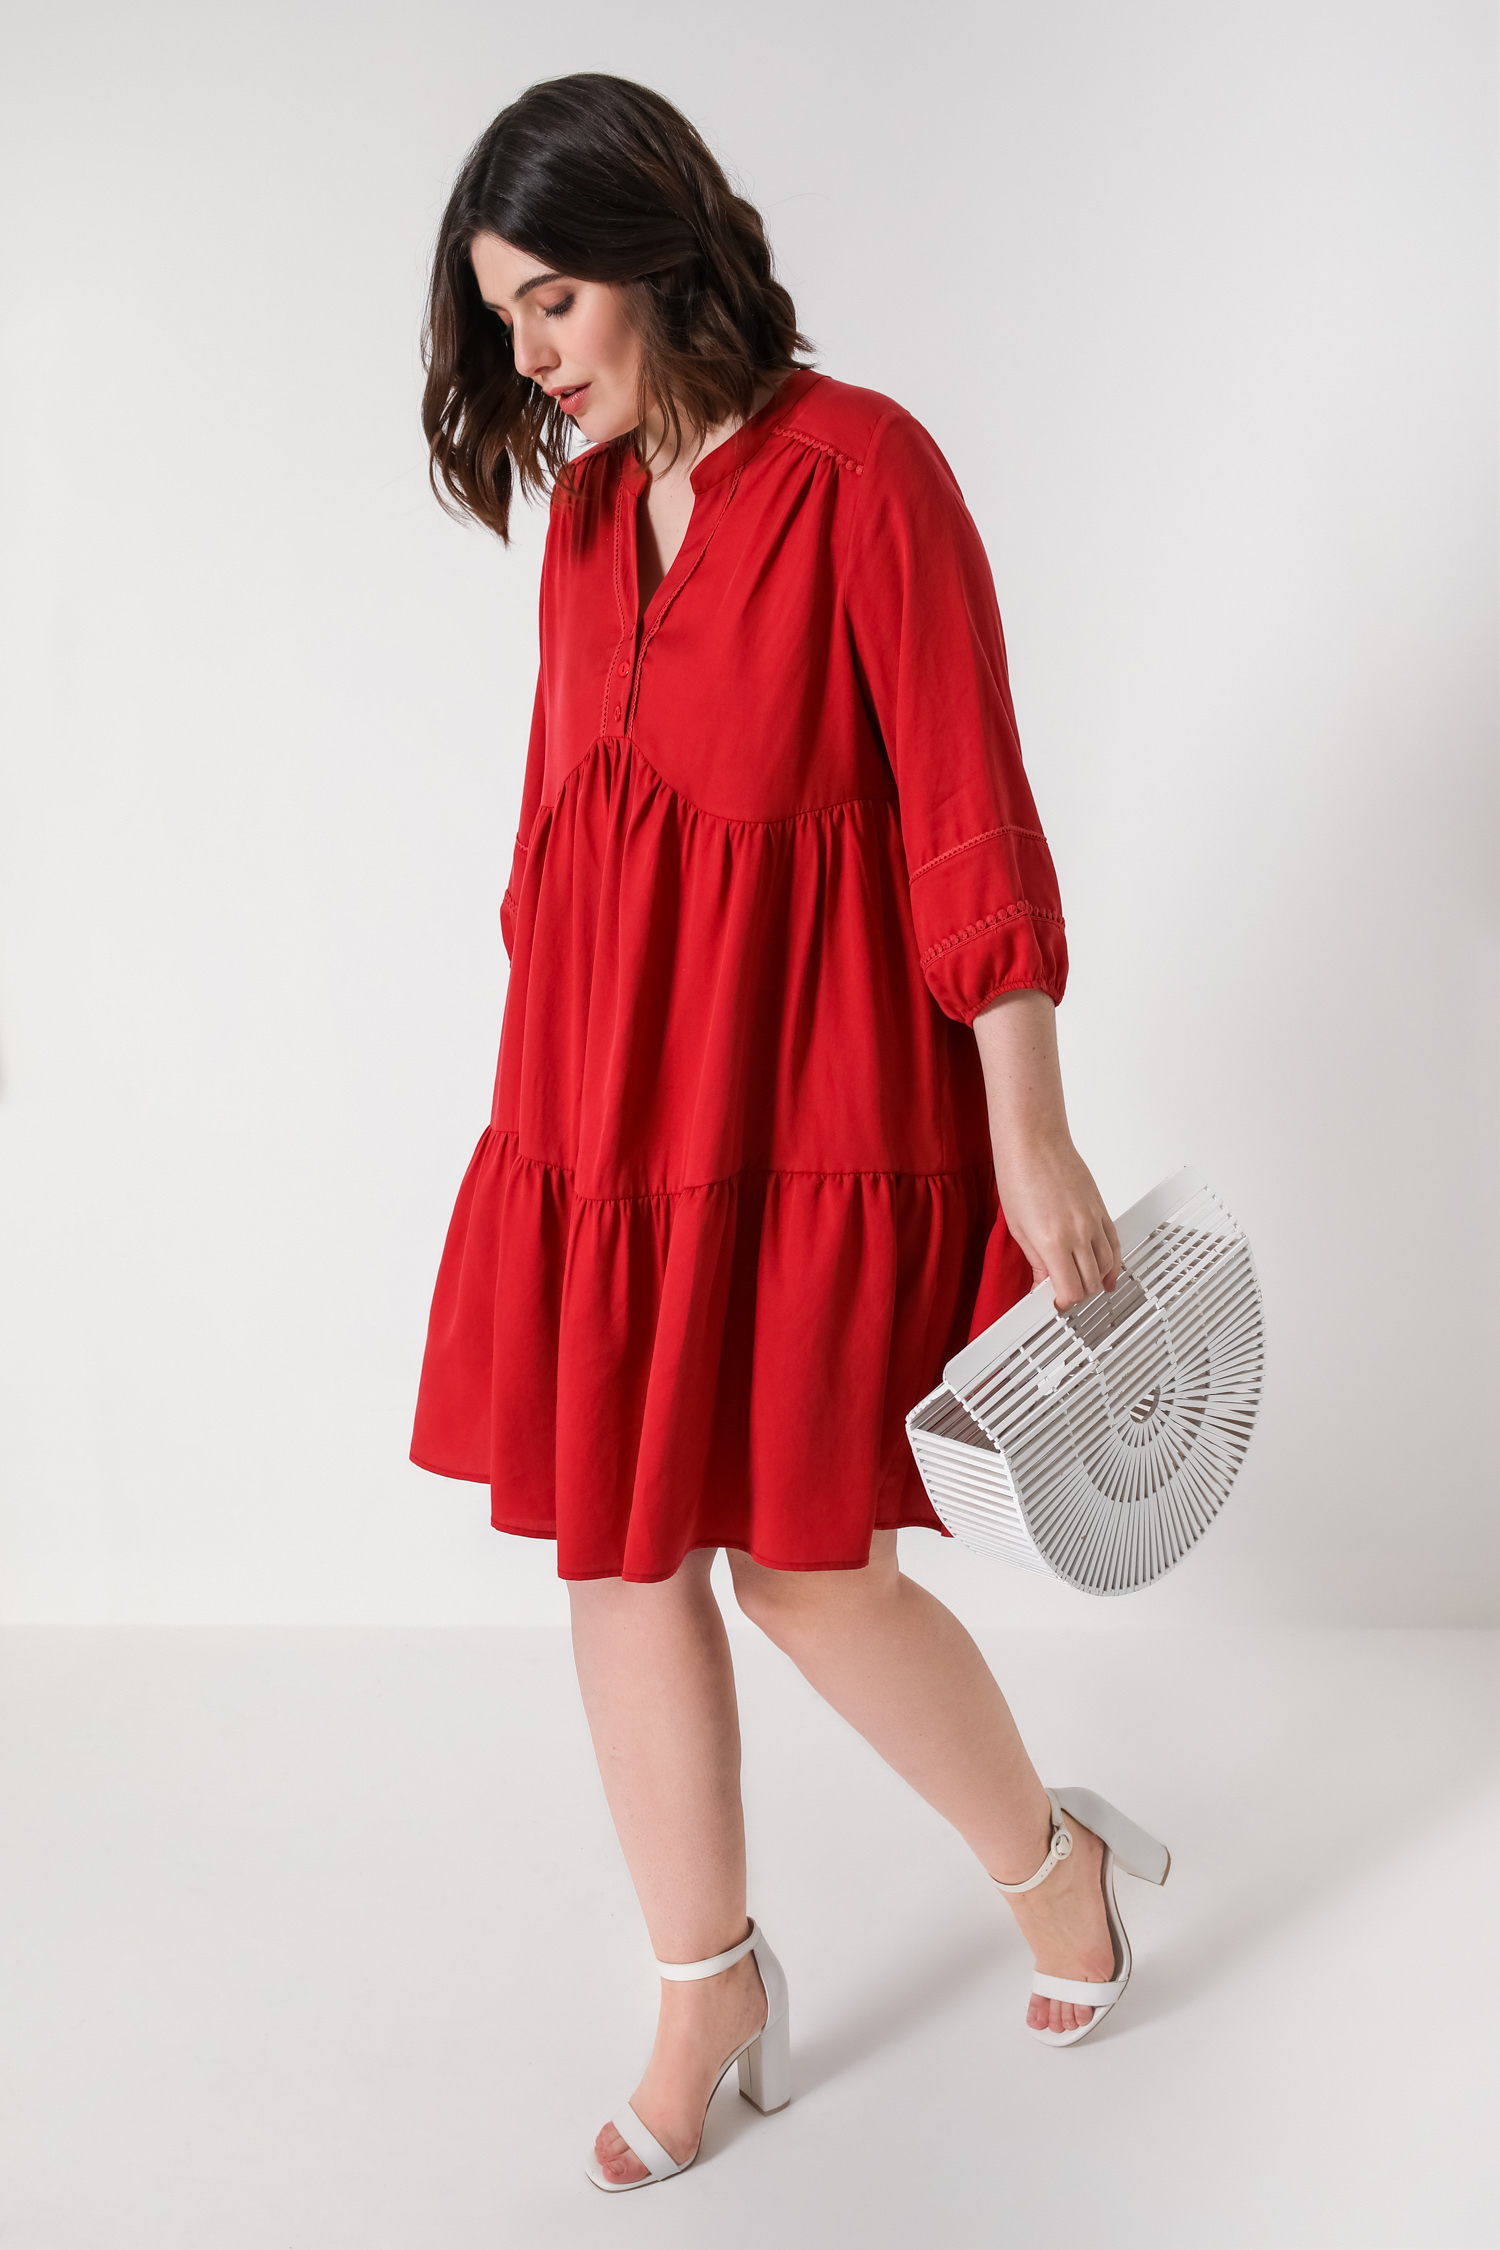 Plain midi bohemian style tencel dress